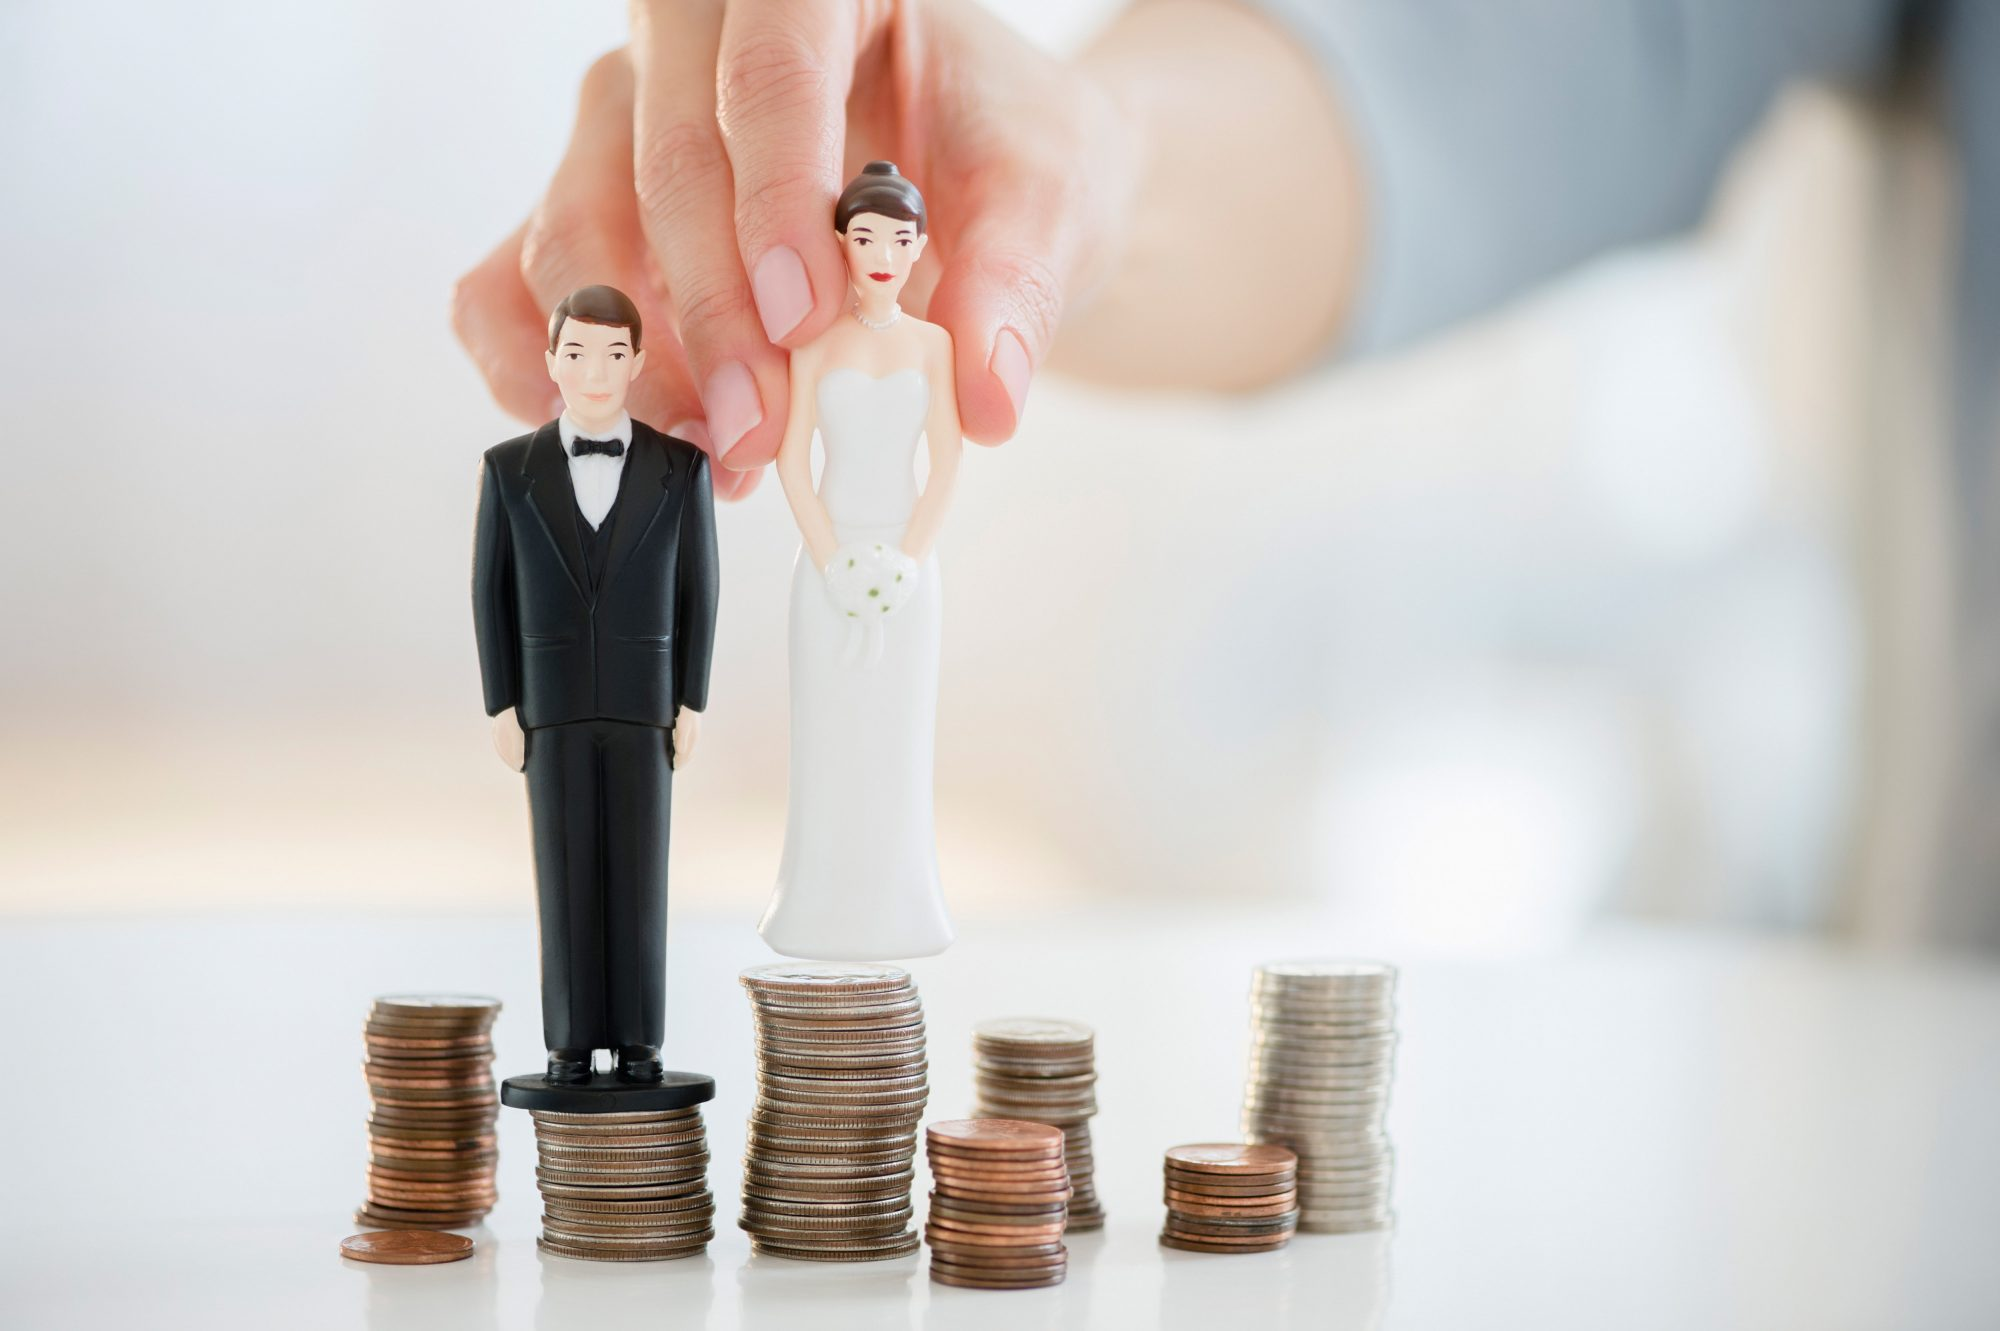 Wedding Budget, Bride and Groom Figurines on Money